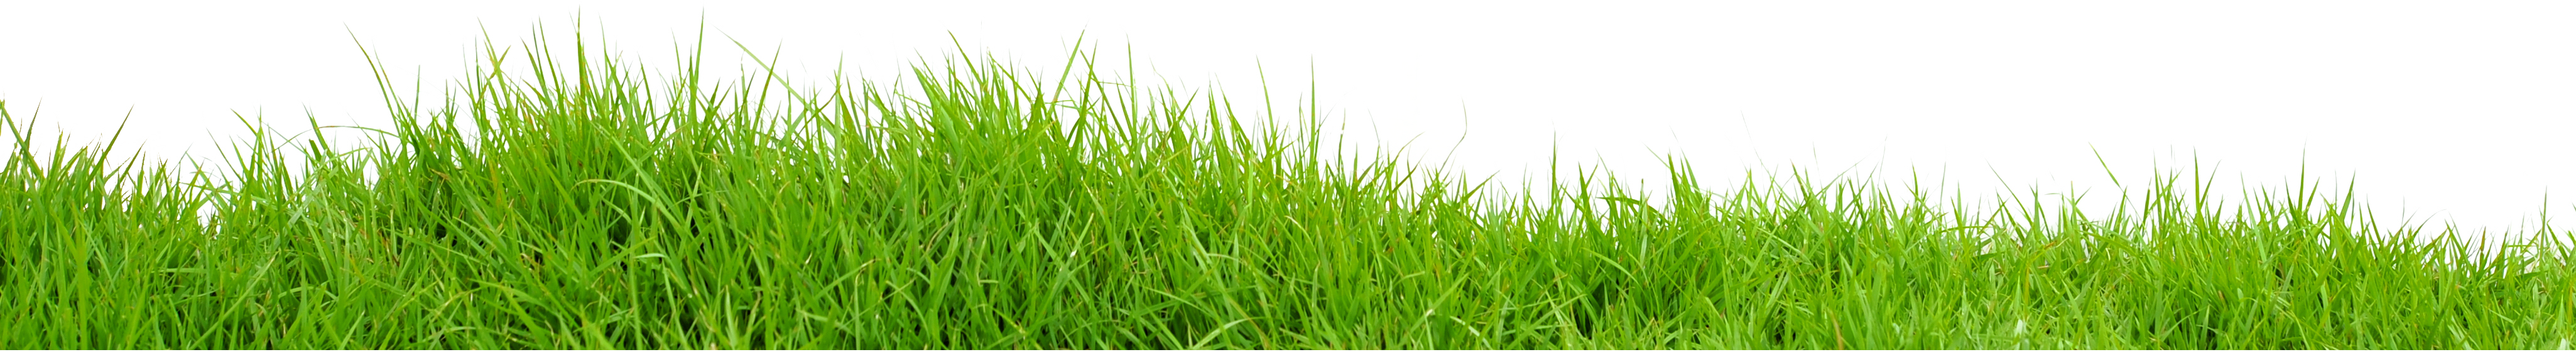 grass png free pictures, images grass png download free - Grasses PNG HD